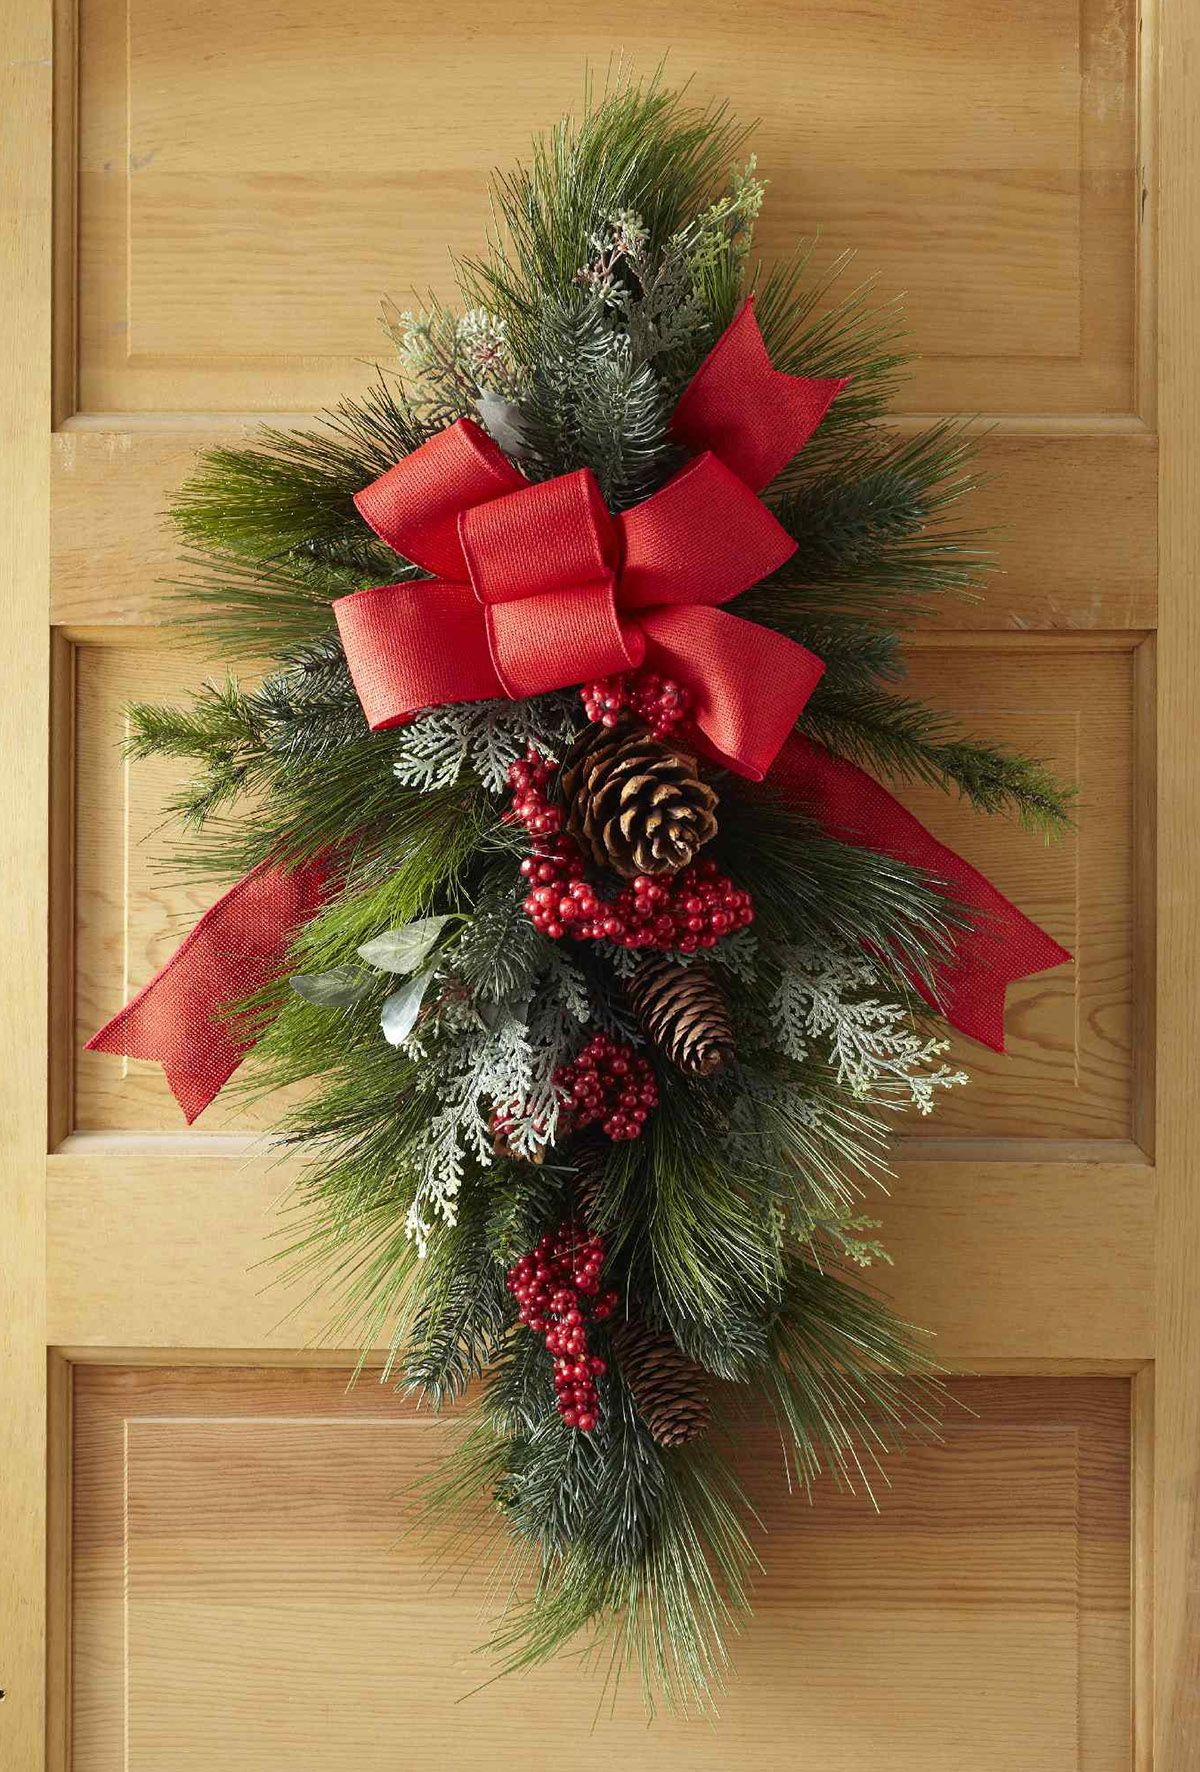 Make Your Own Christmas Swag Wreath In Just 30 Minutes